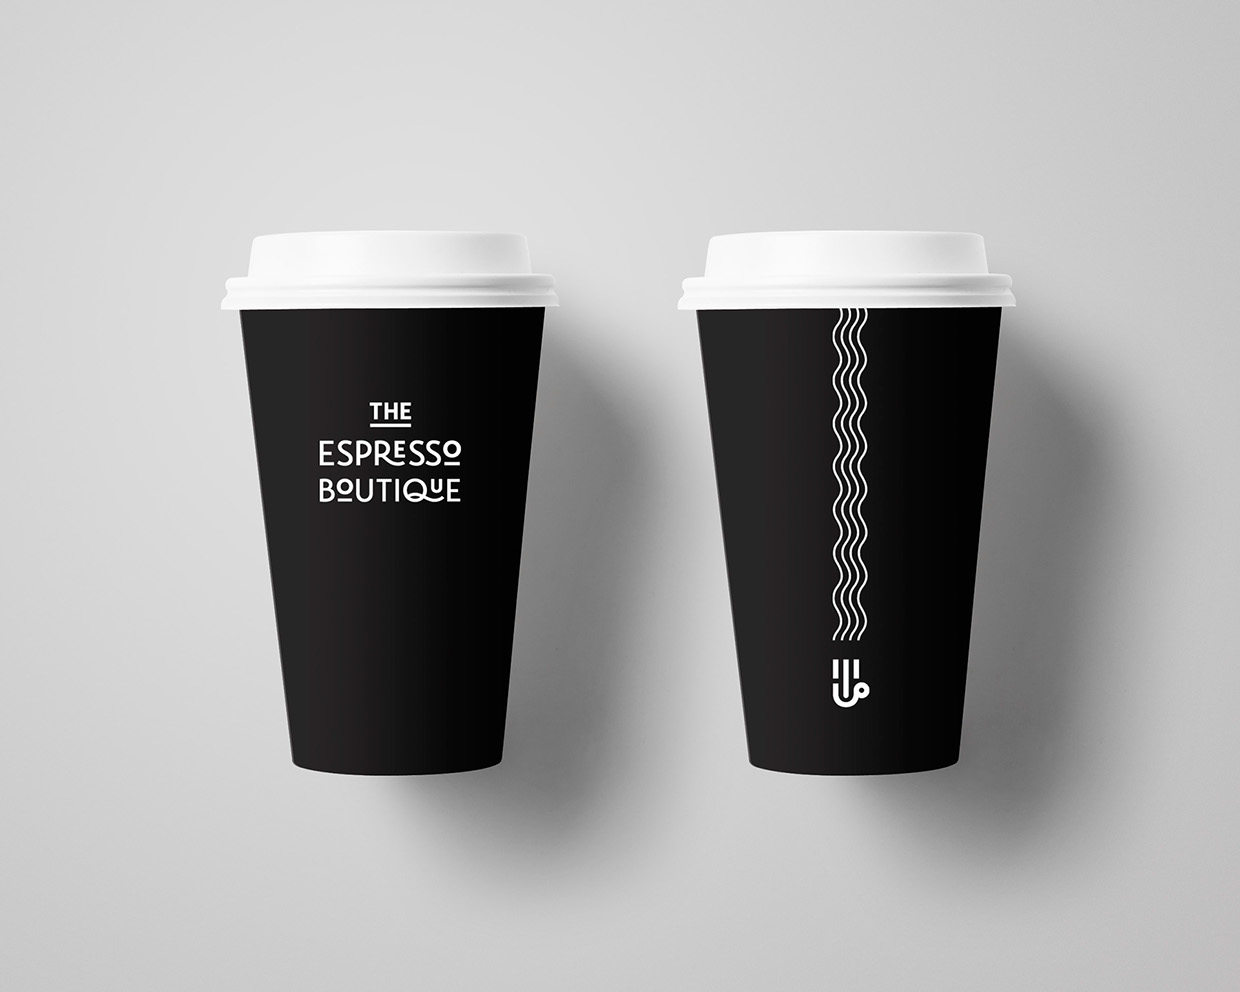 The Espresso Boutique branding